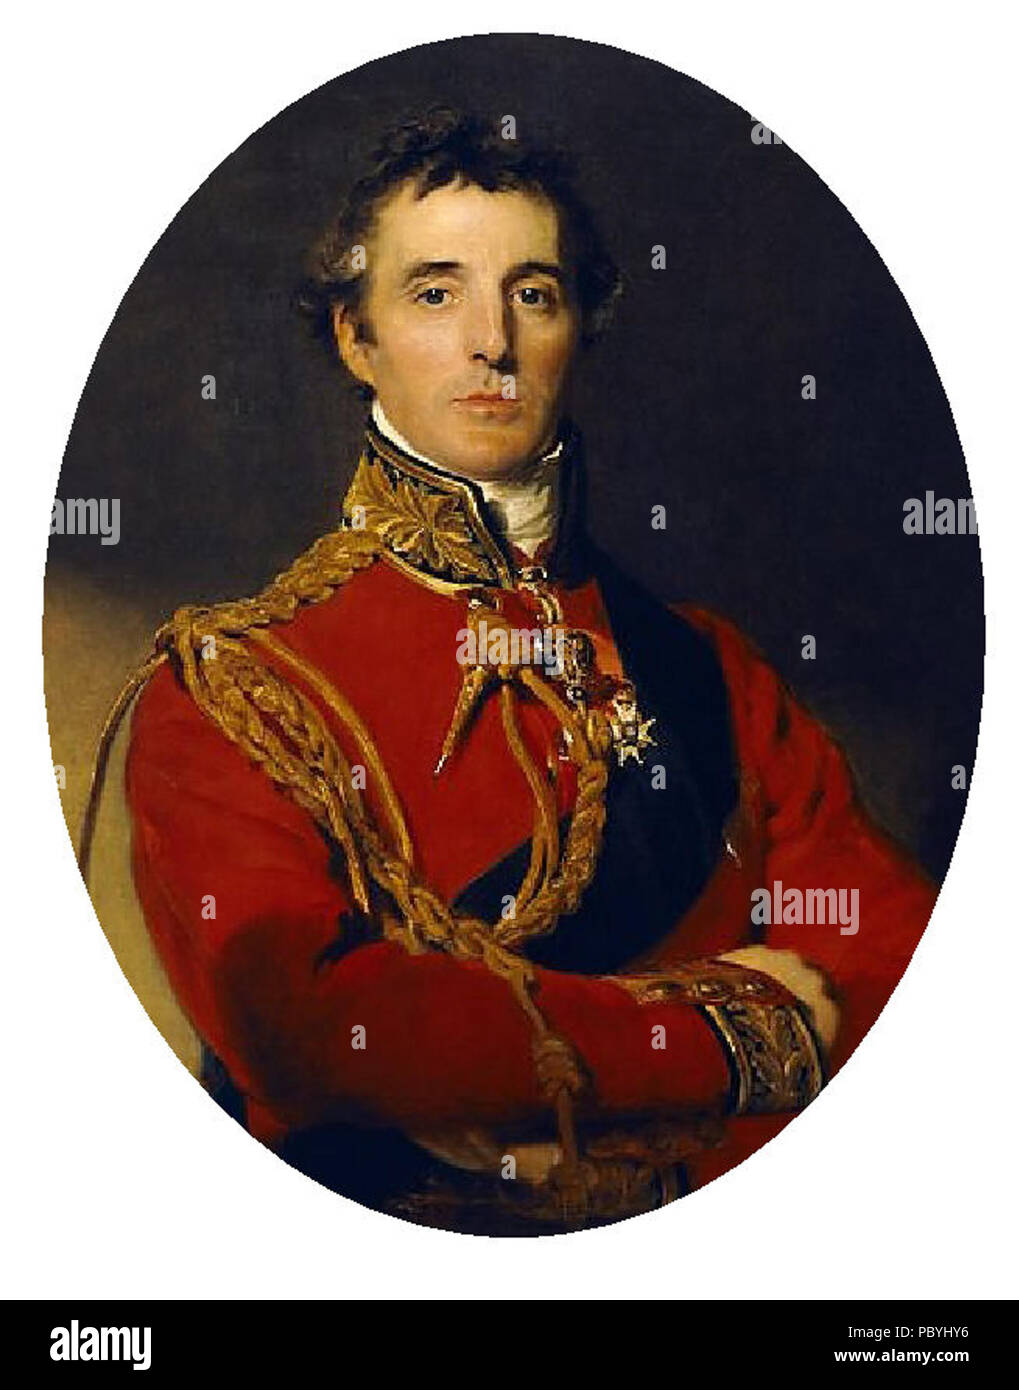 209 First Duke of Wellington detail of a portrait - Stock Image